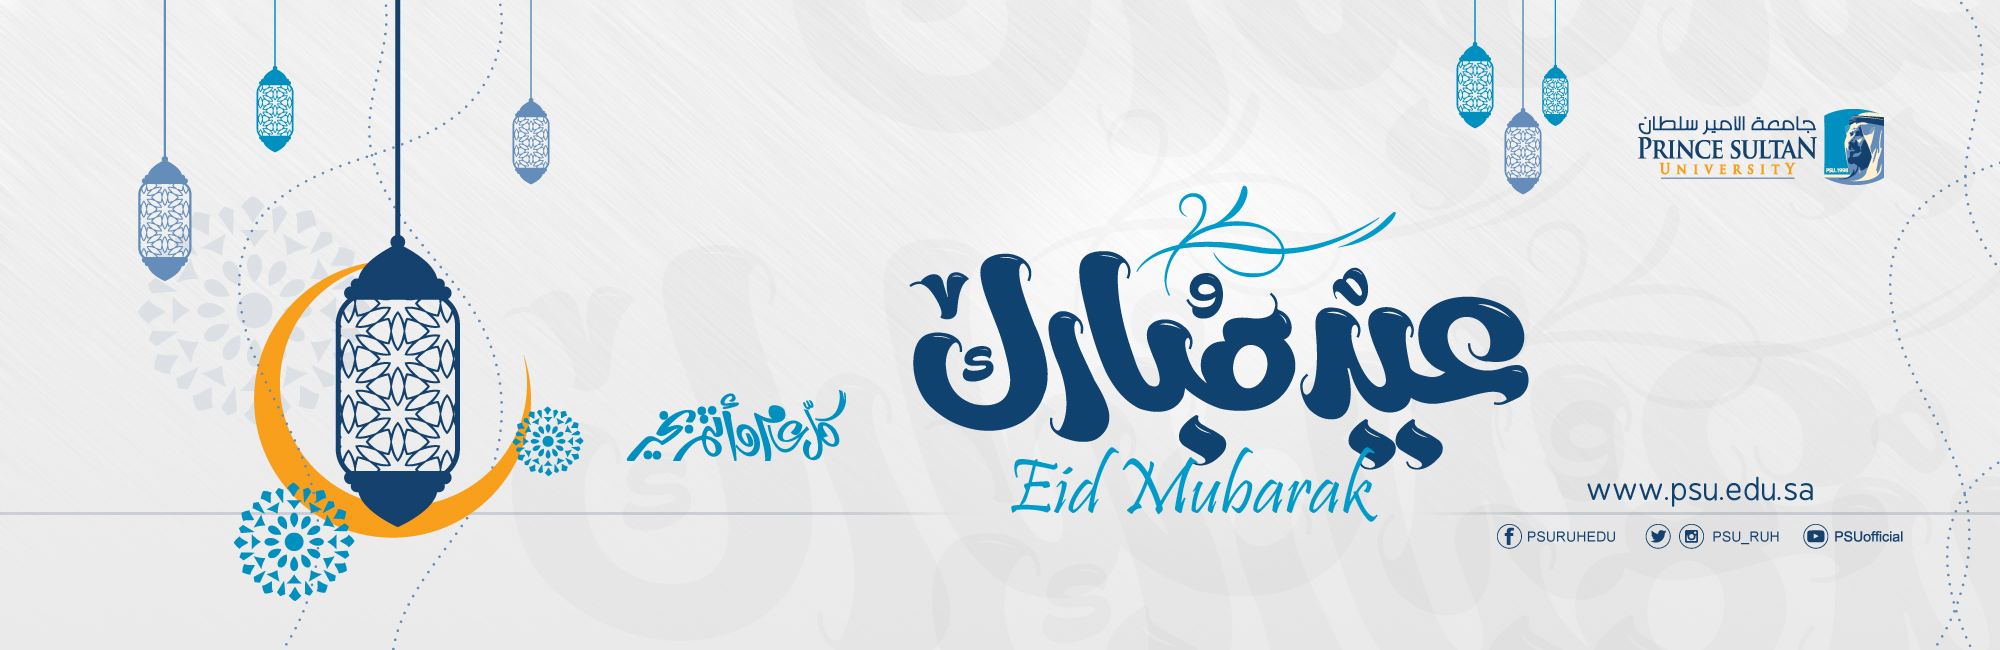 Eid Mubarak Greetings from Prince Sultan University